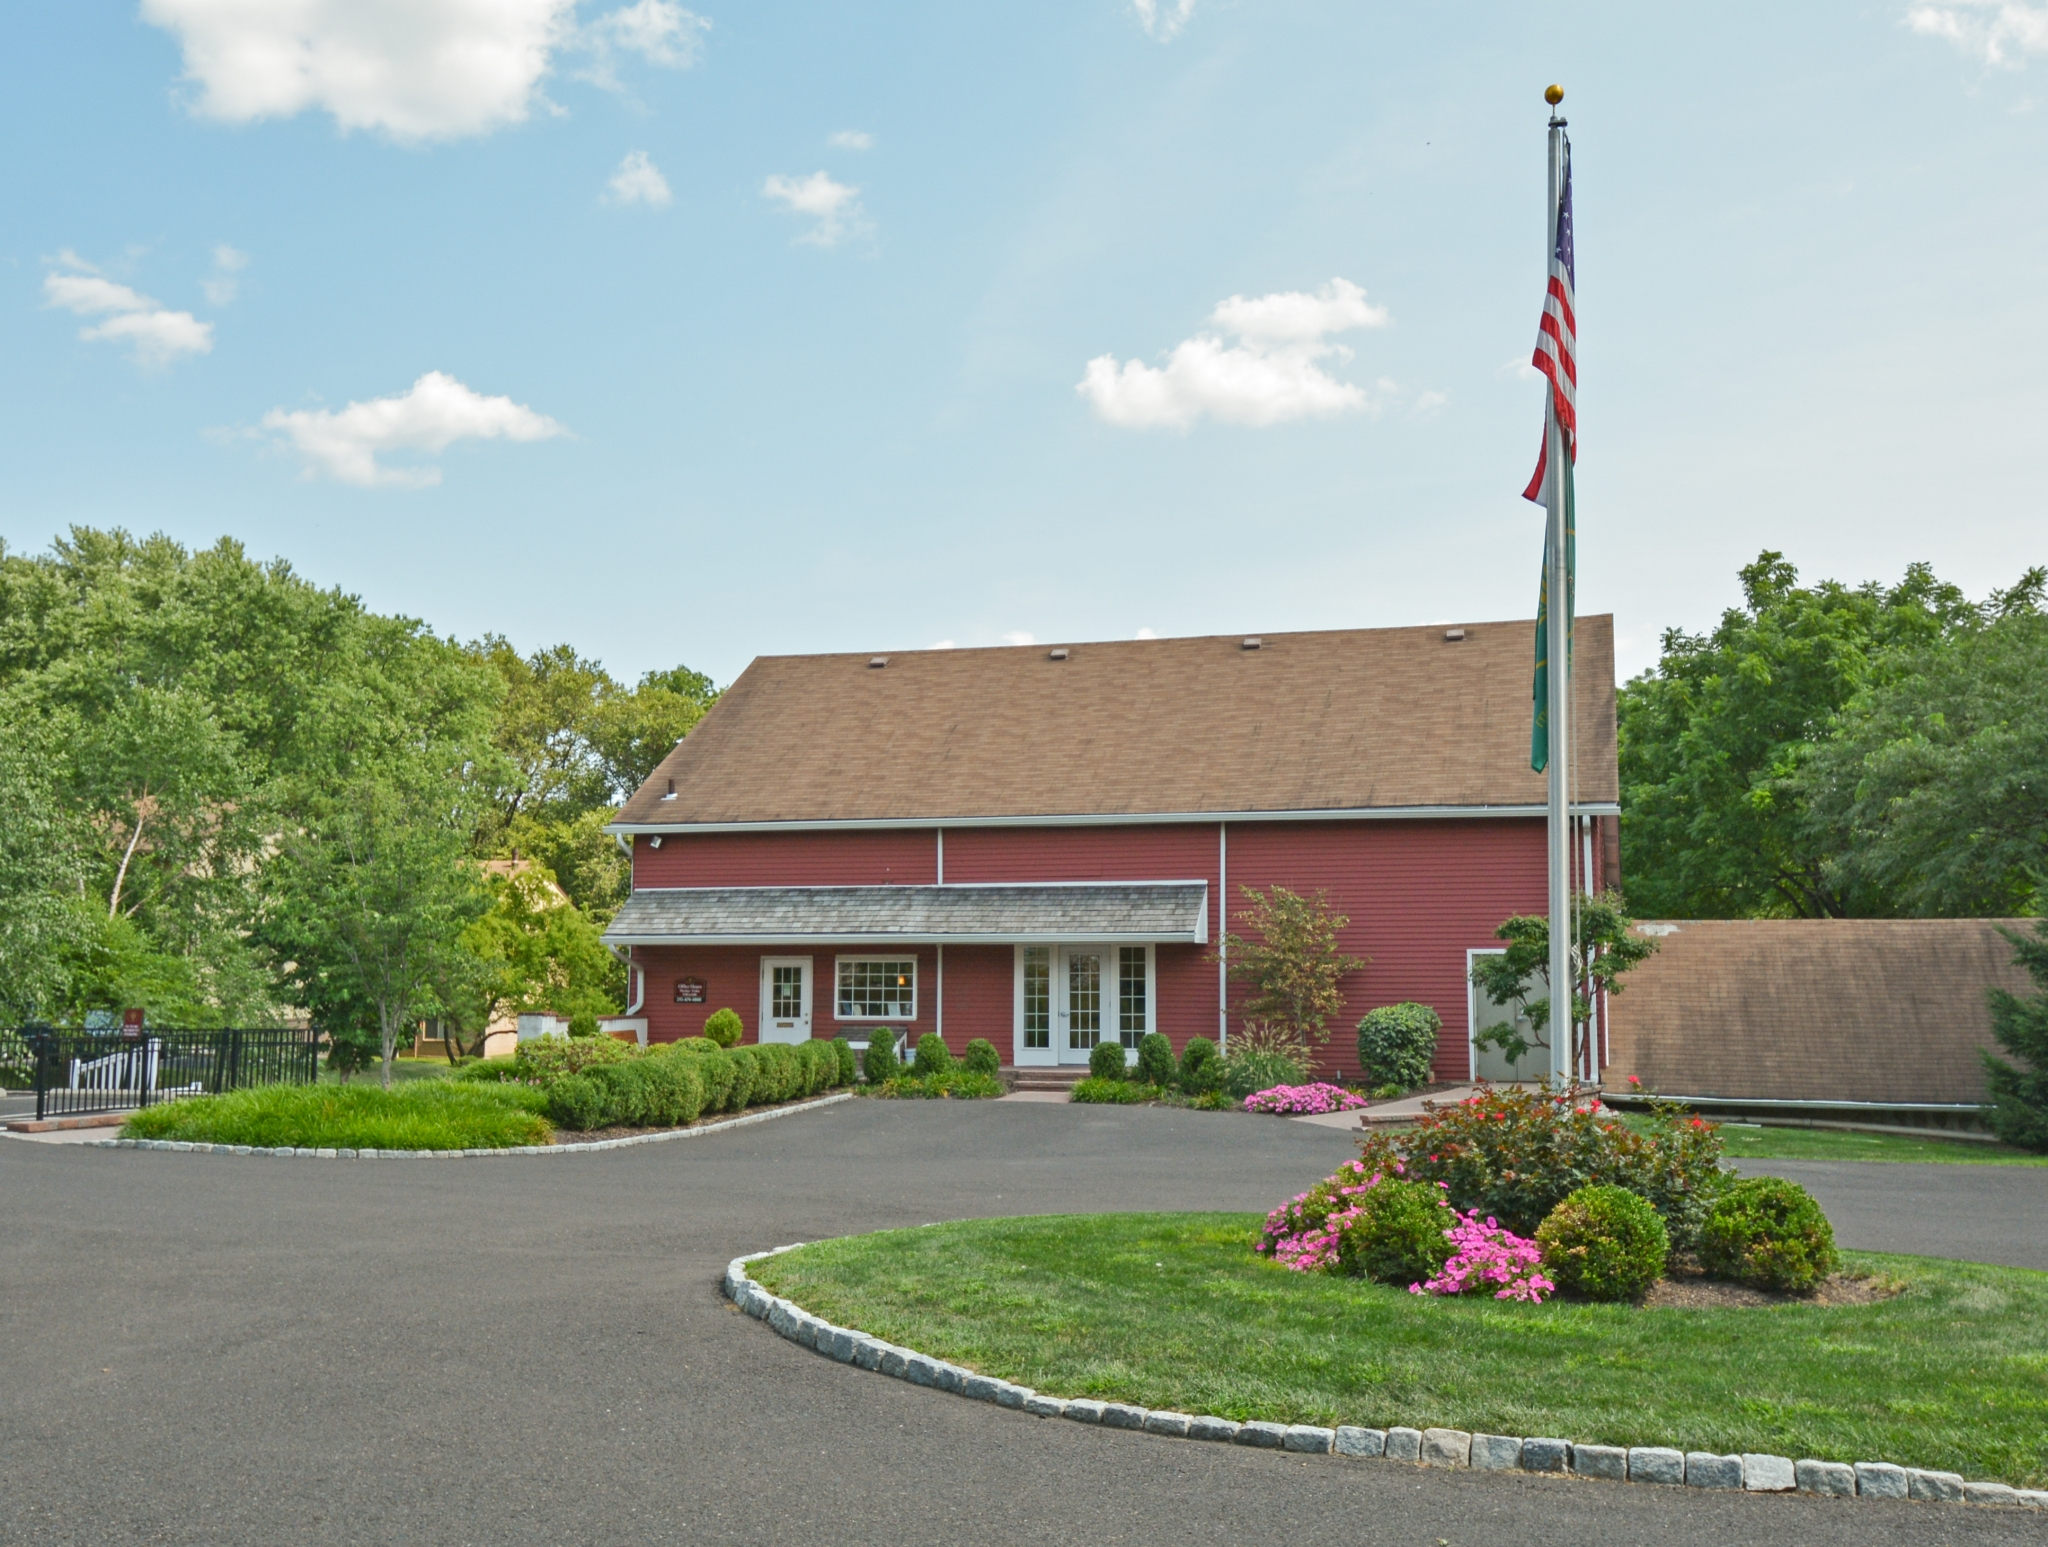 Fox Run Apartments in Warminster, PA | Whitepages